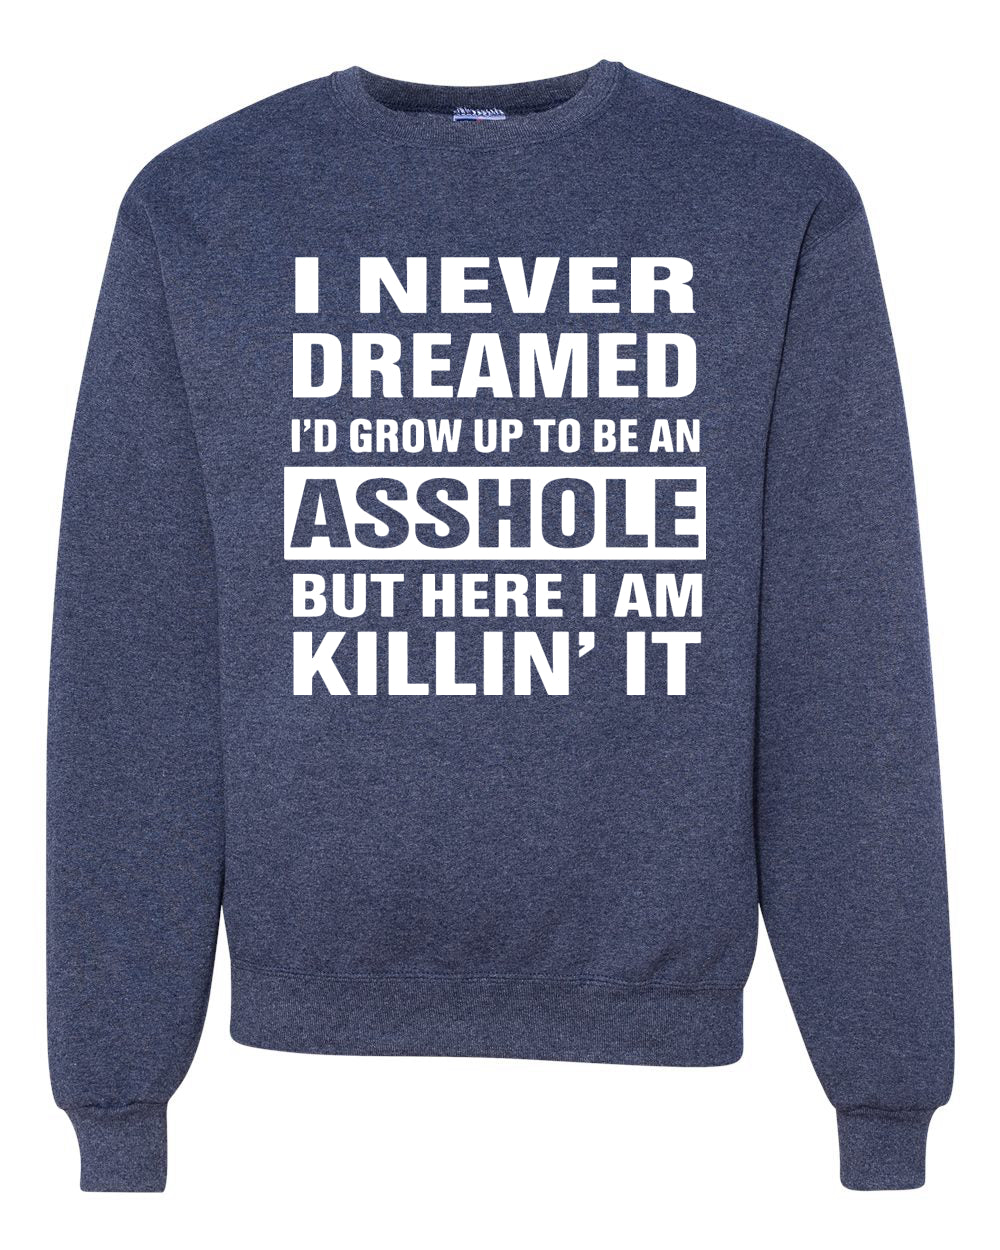 I Never Dreamed I'd Grow Up to be an Asshole  Political Unisex Crewneck Graphic Sweatshirt